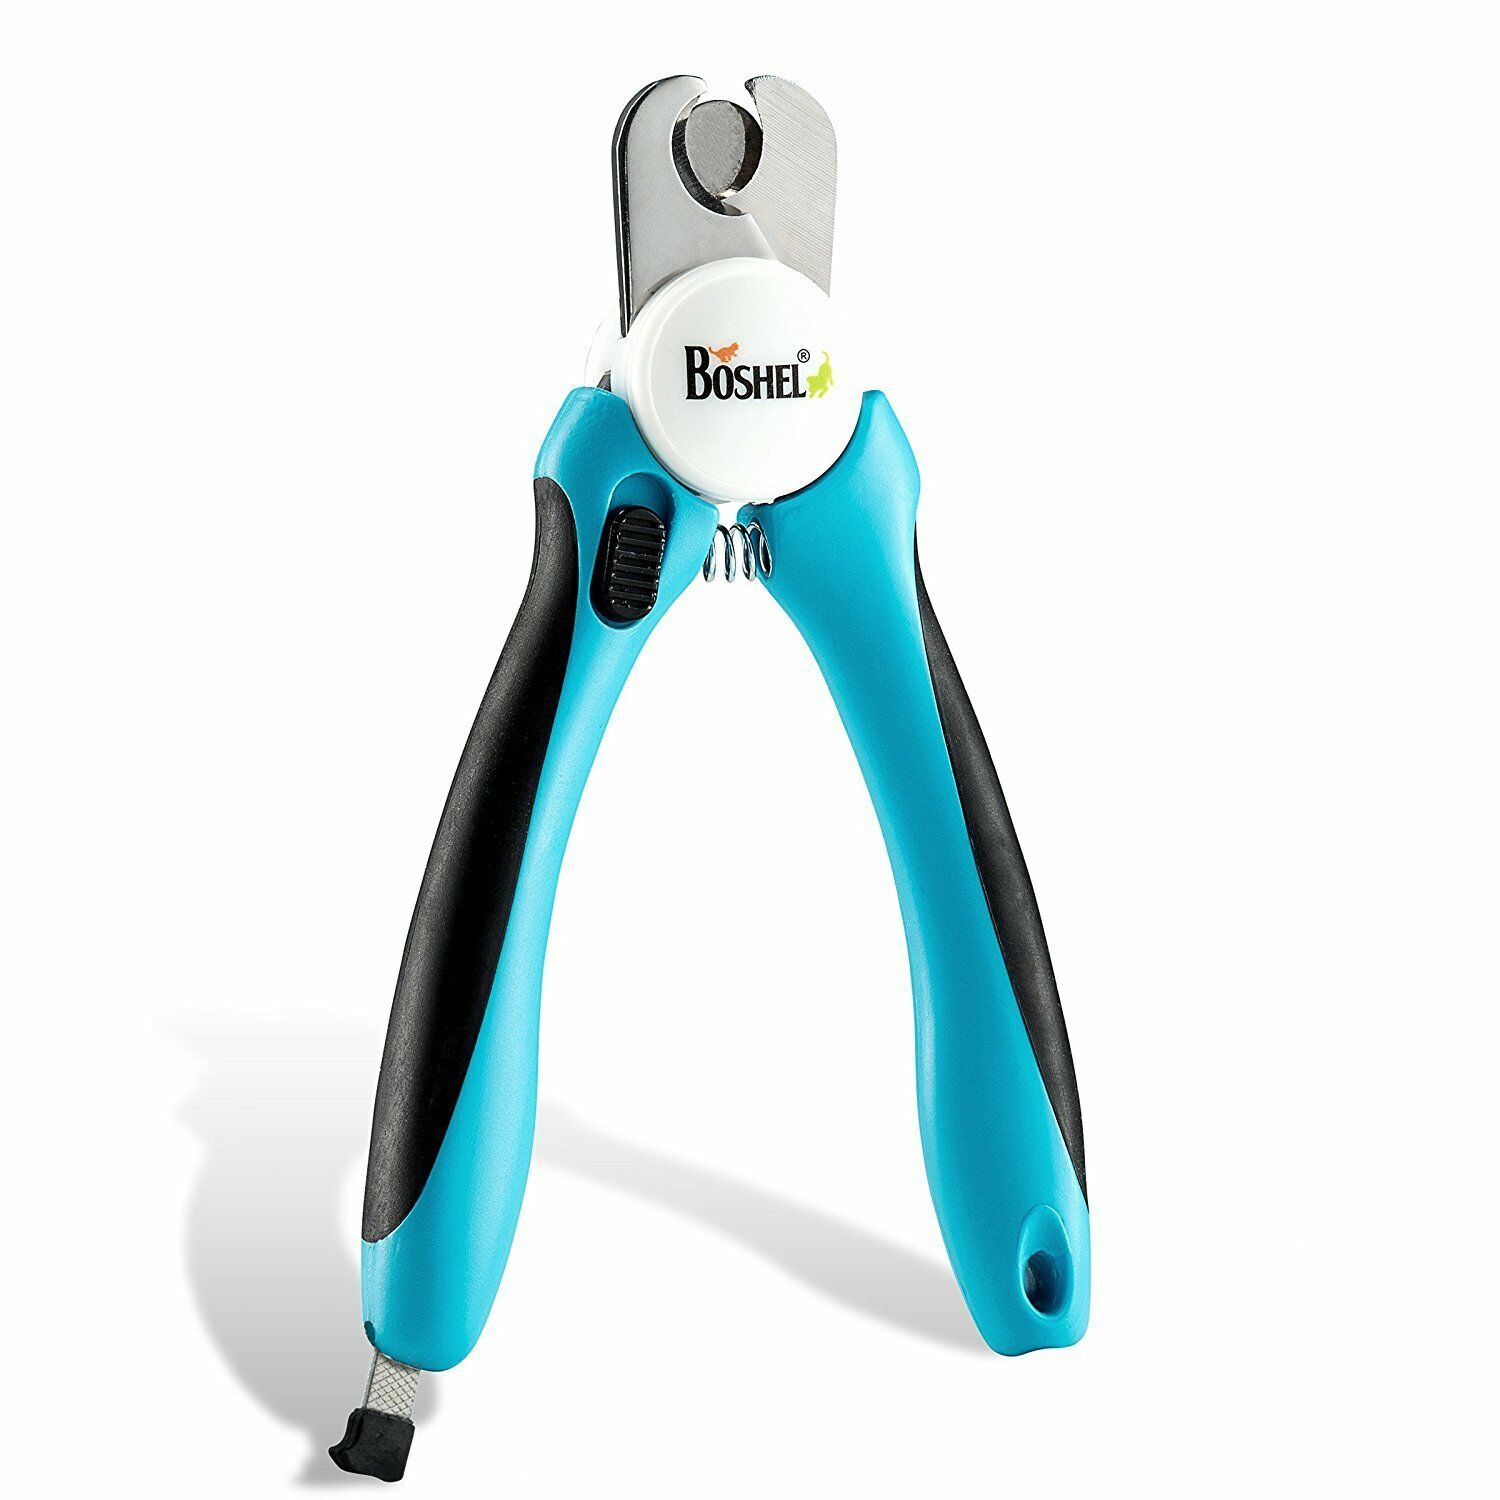 Dog Nail Clippers and Trimmer By Boshel With Safety Guard